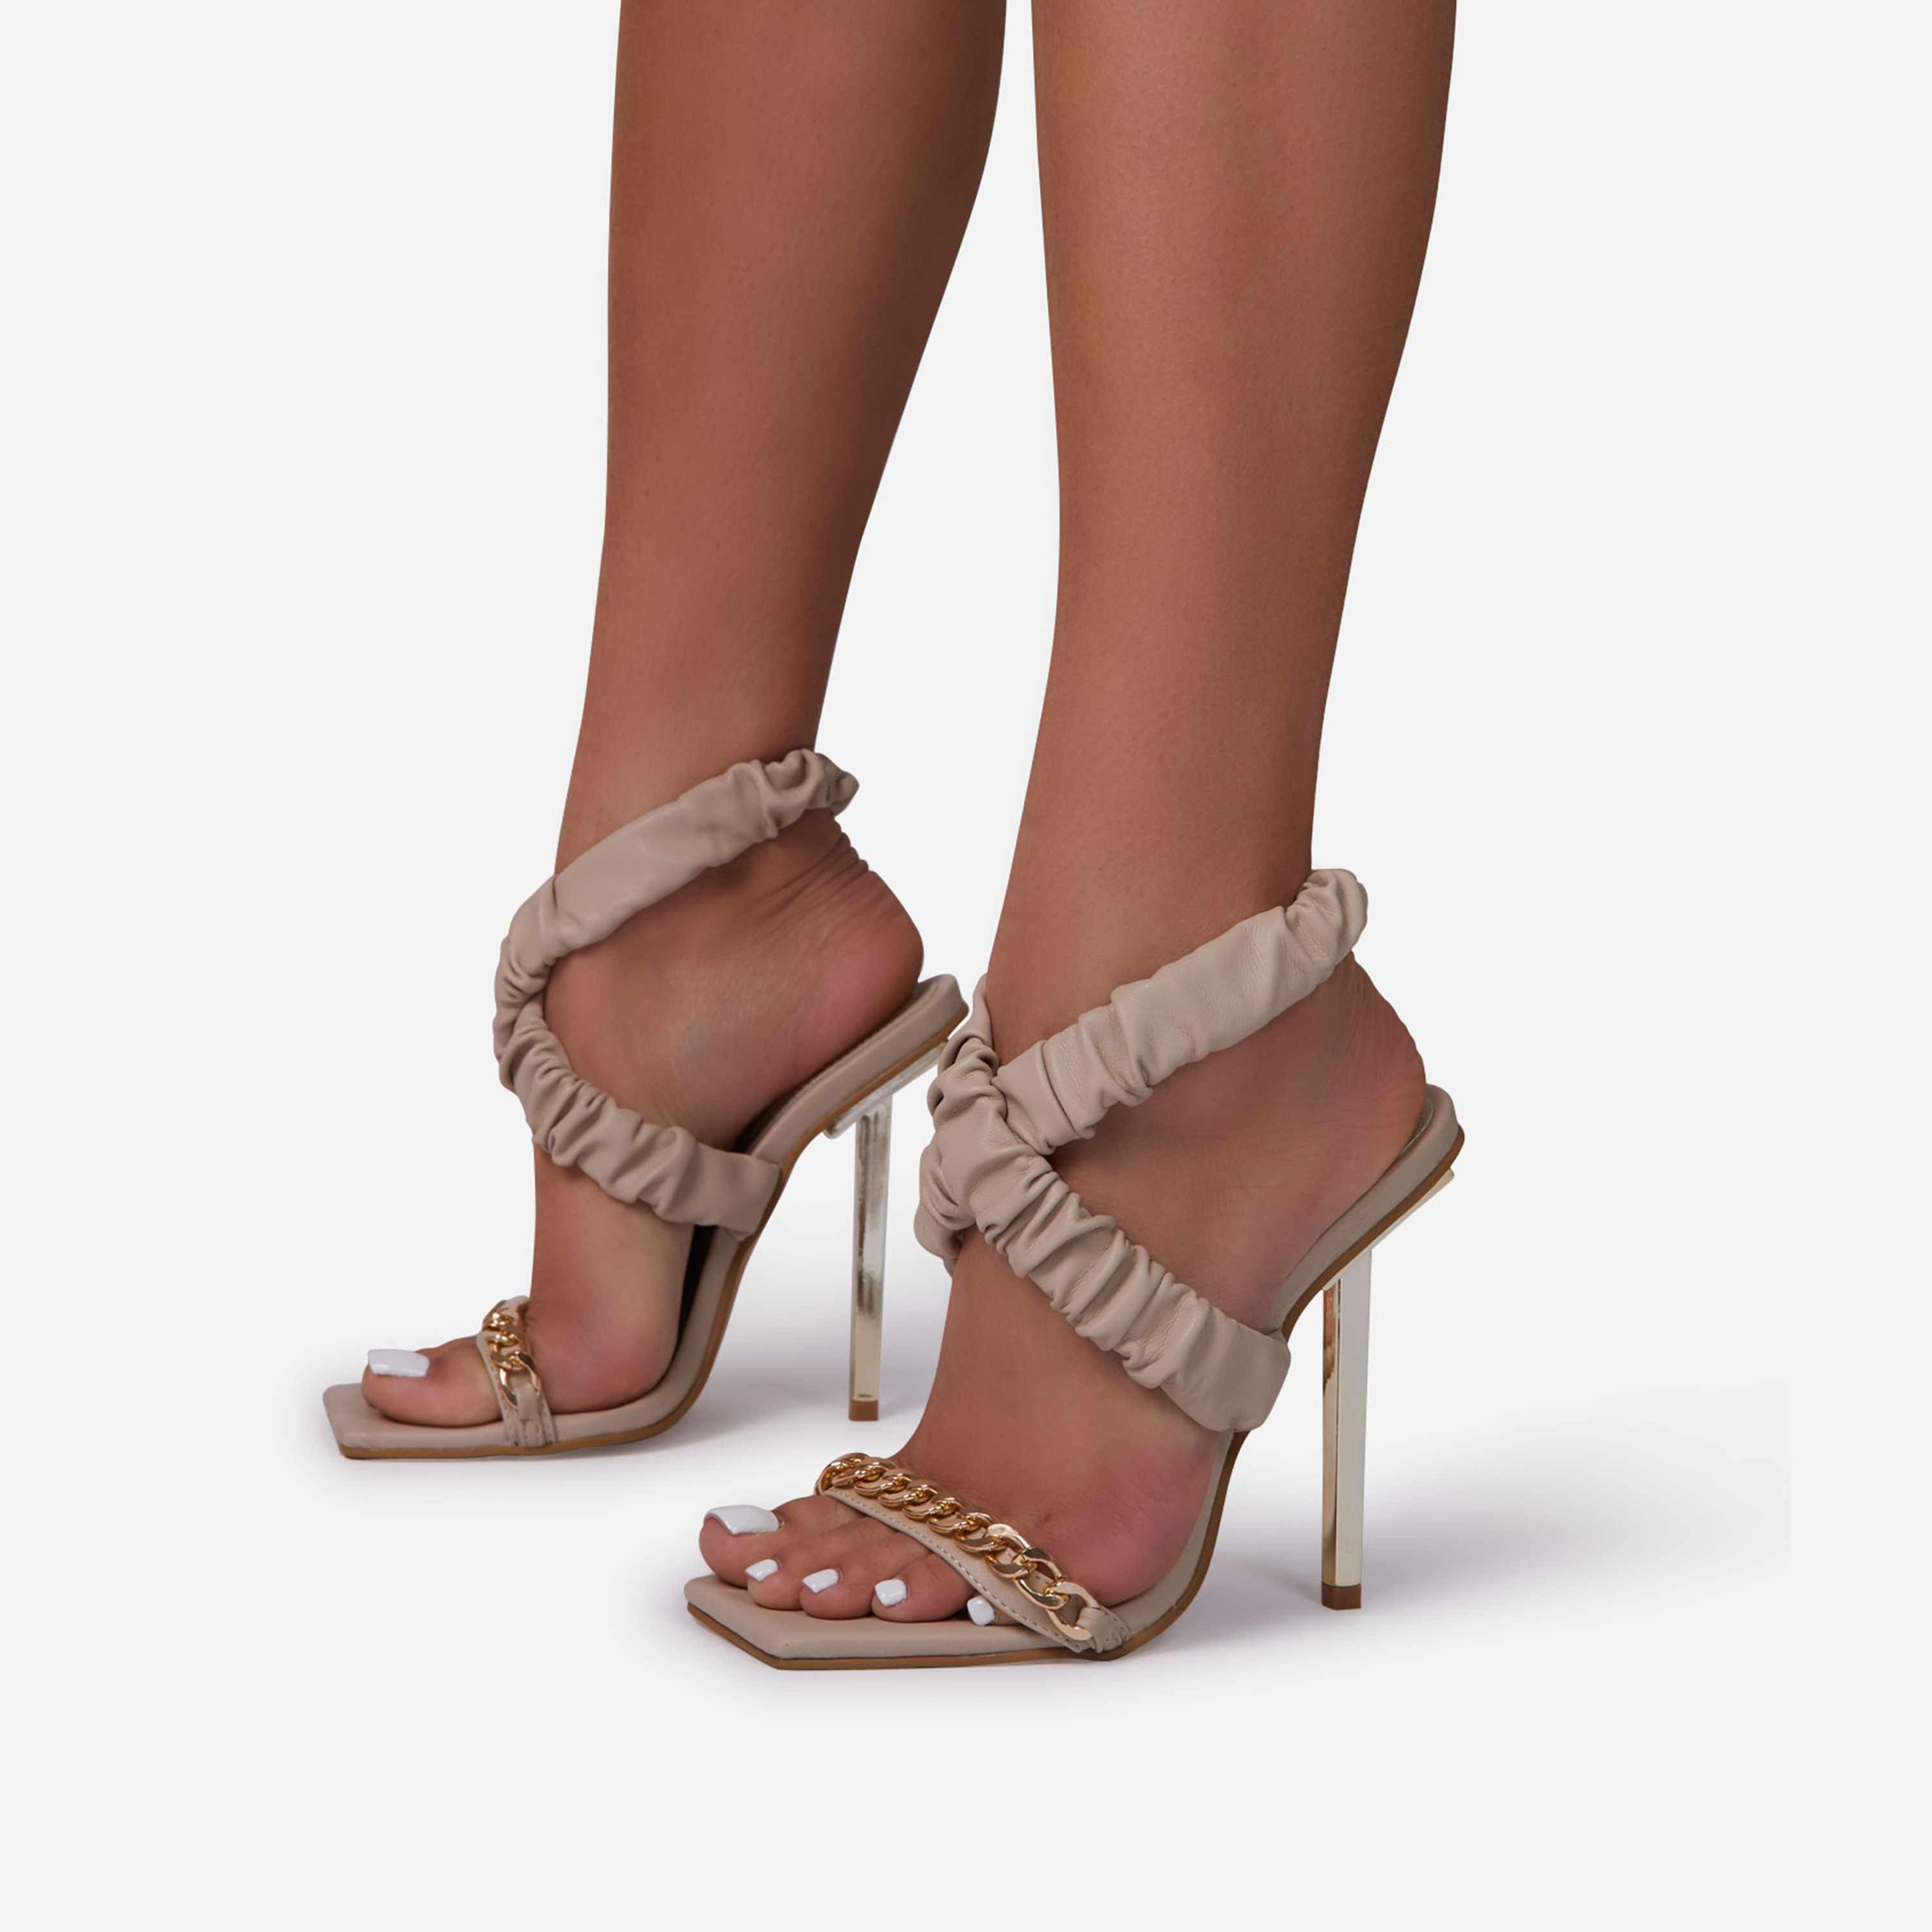 Caught-Up Chain Detail Ruched Strap Square Toe Metallic Heel In Beige Nude Faux Leather